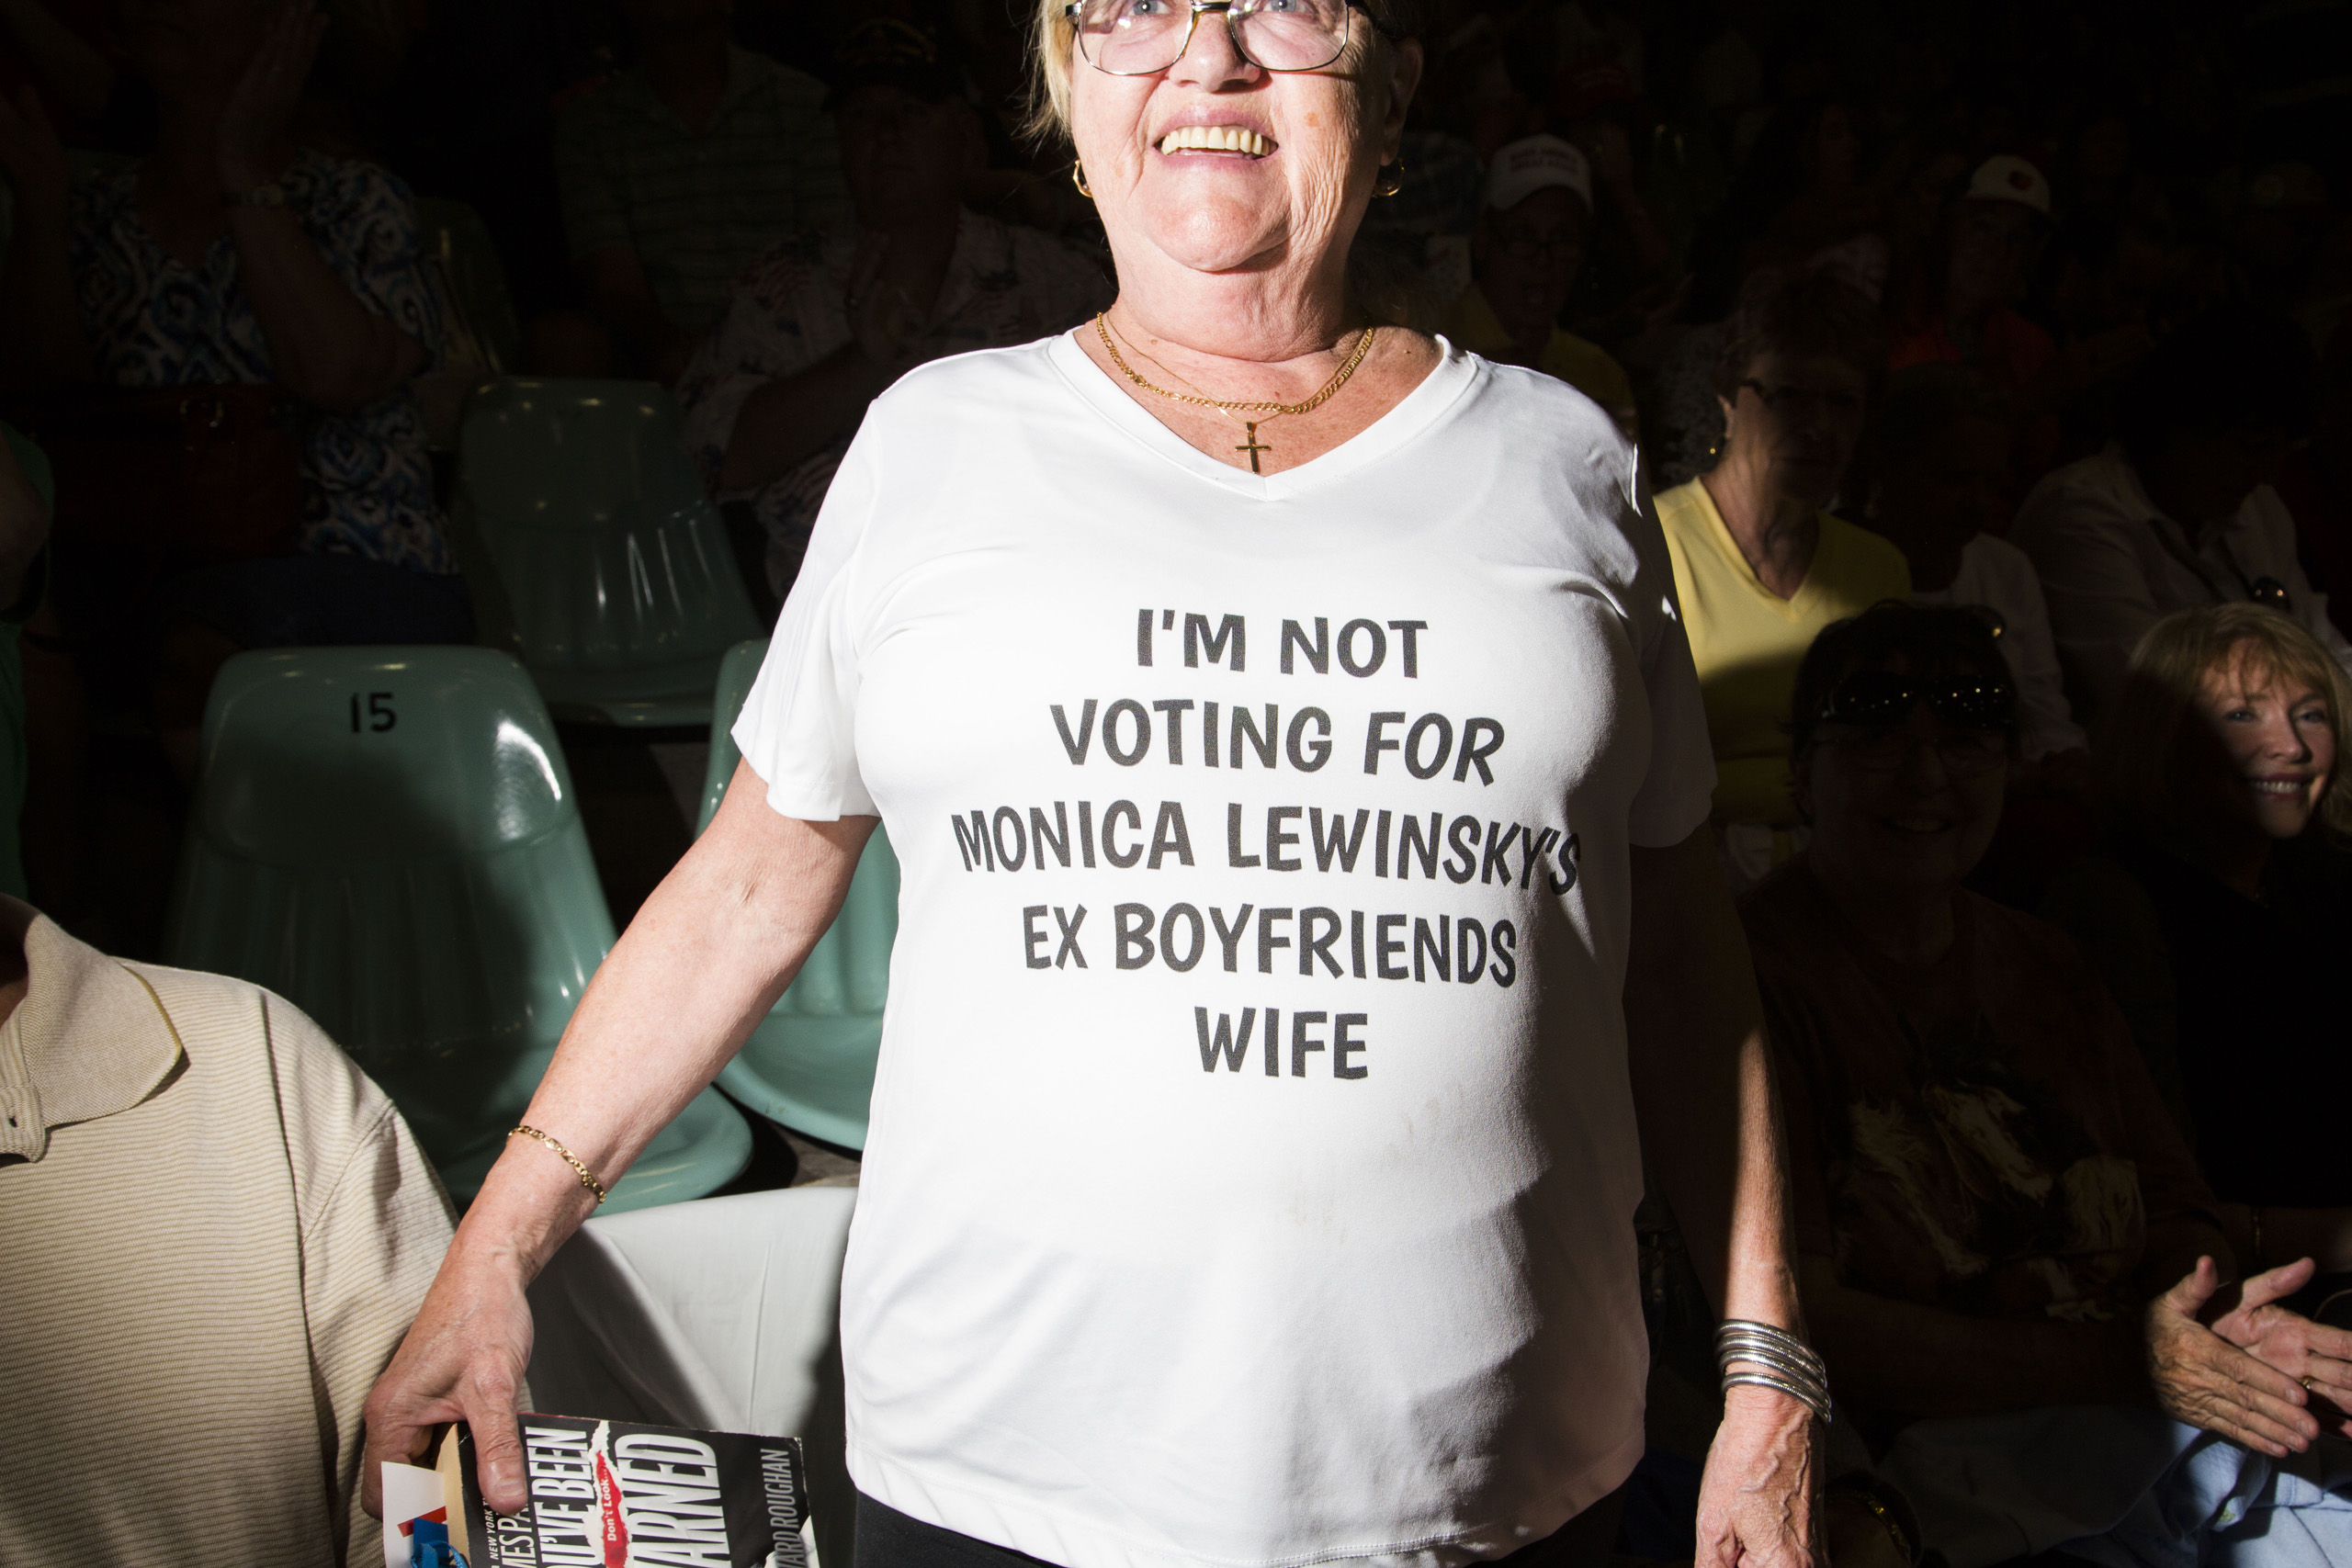 Supporter of Republican presidential candidate shows off a tshirt at a rally in Sarasota, Fla. Nov. 28, 2015.